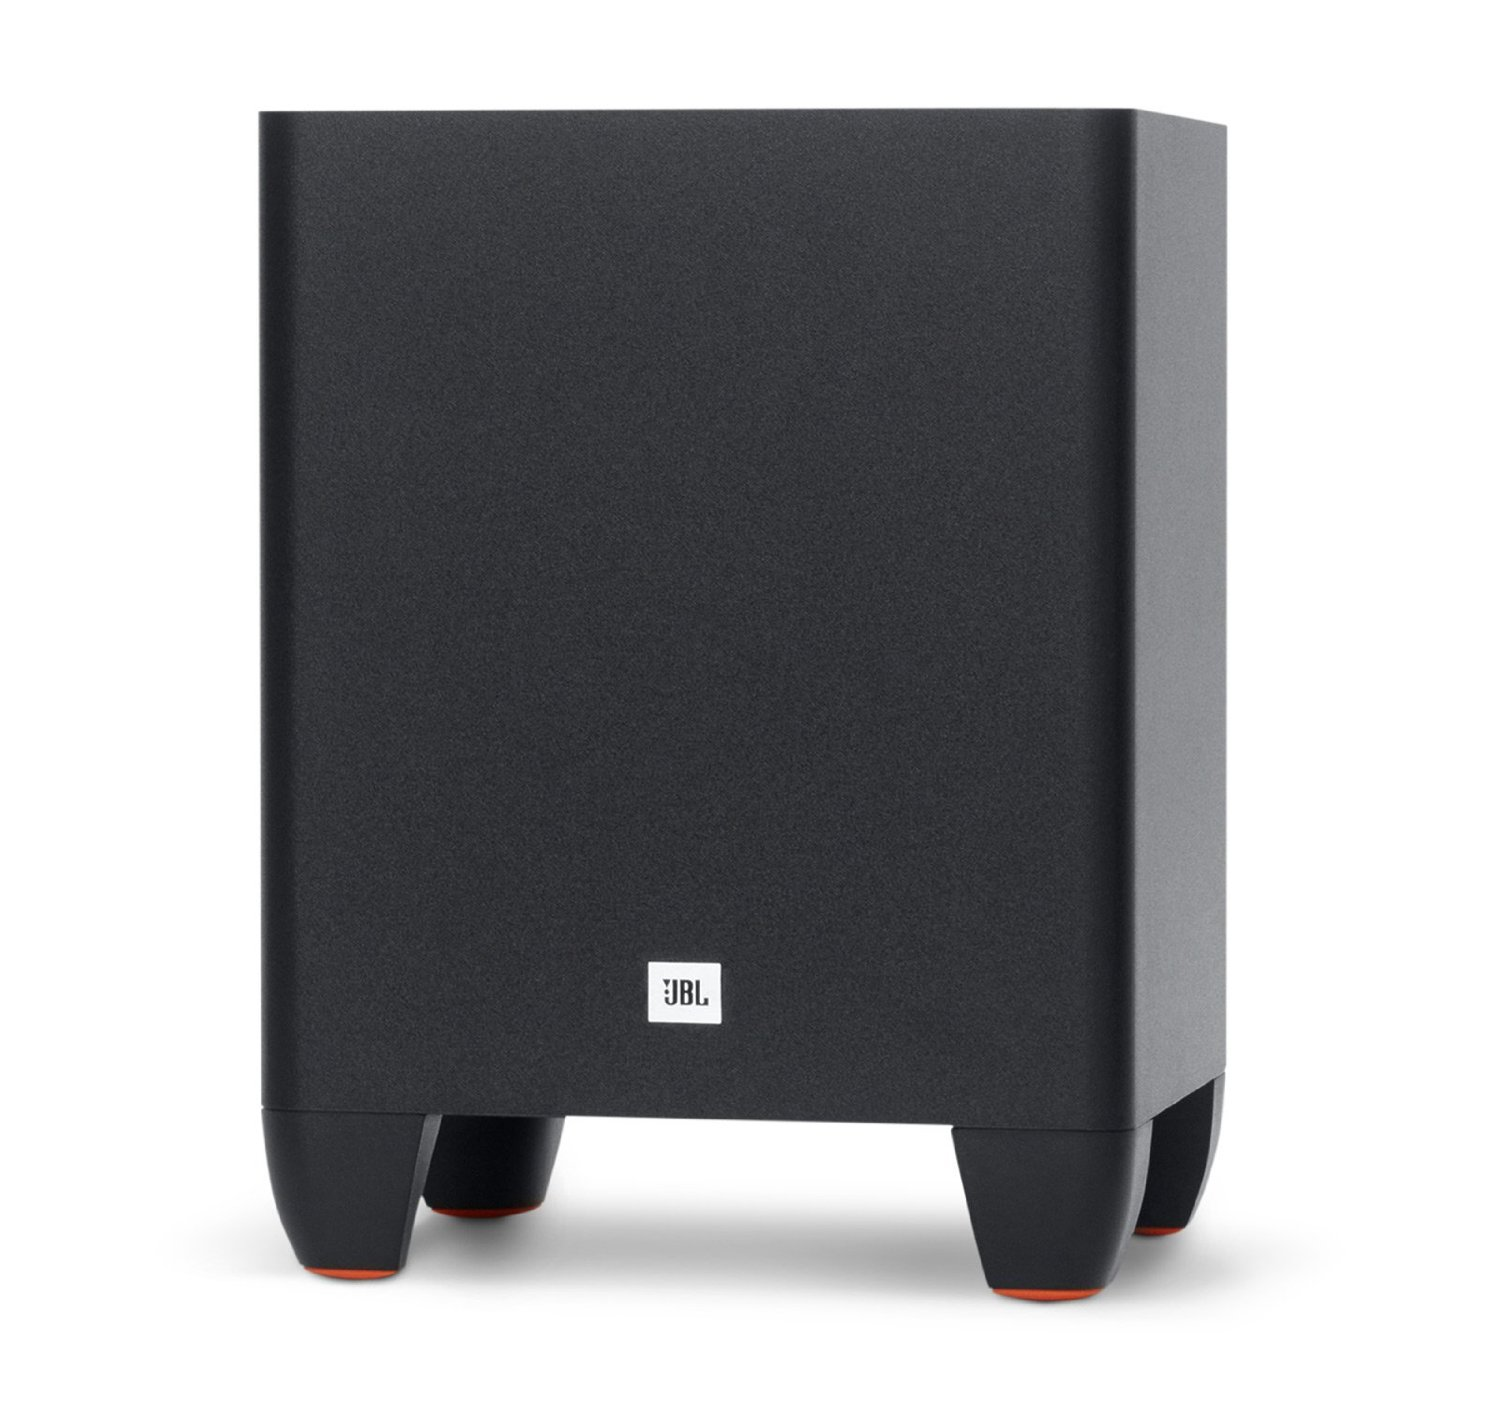 JBL Cinema SB250 subwoofer